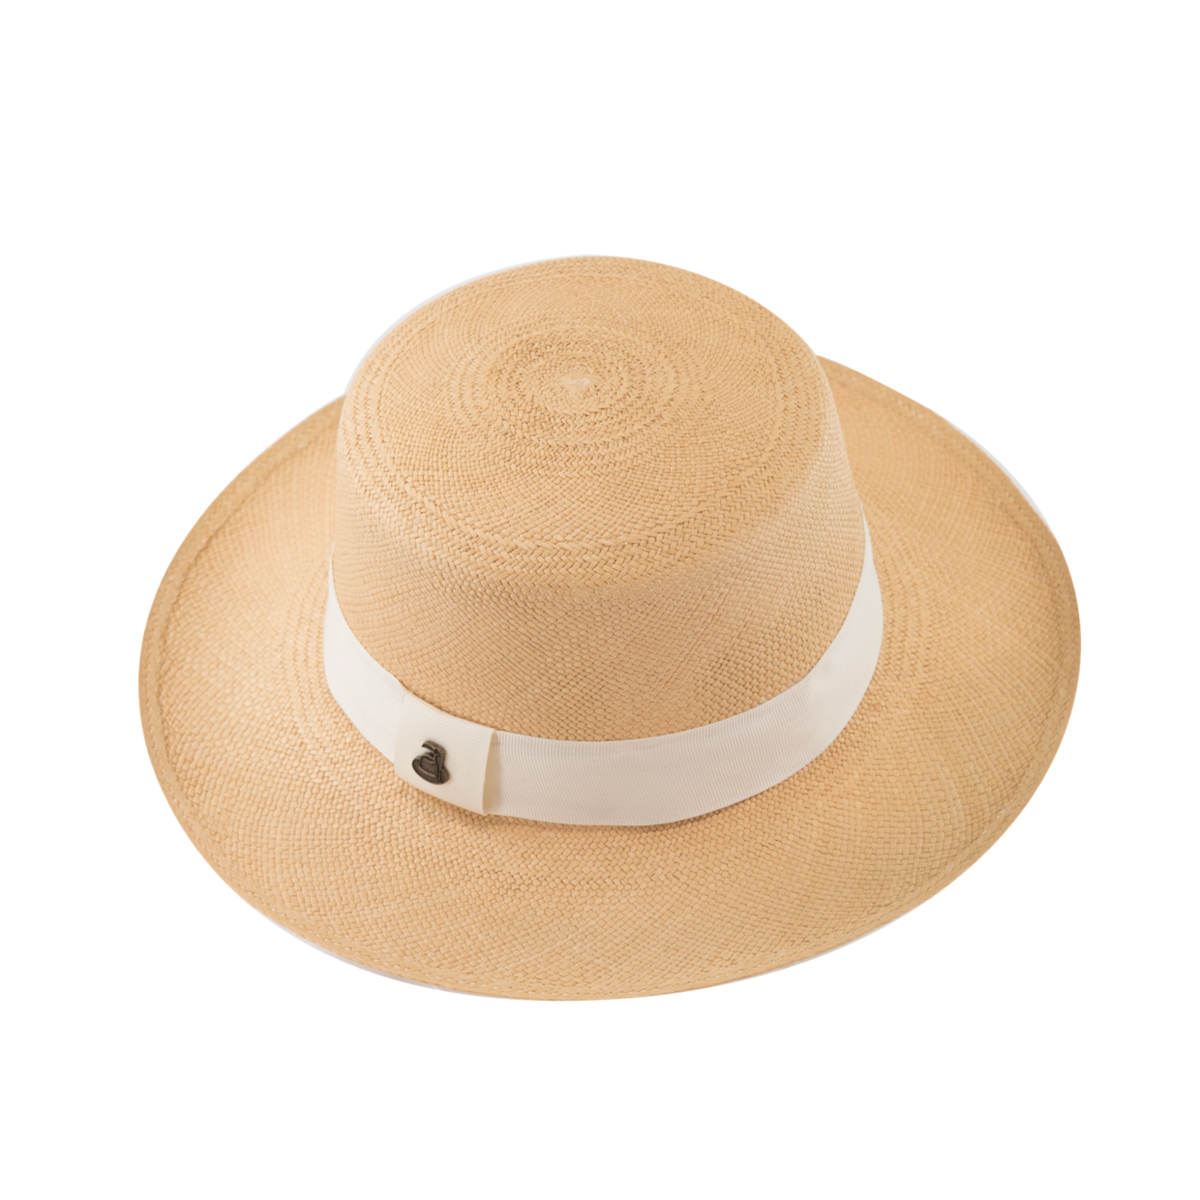 Panama Boater - Natural with White Band - product image